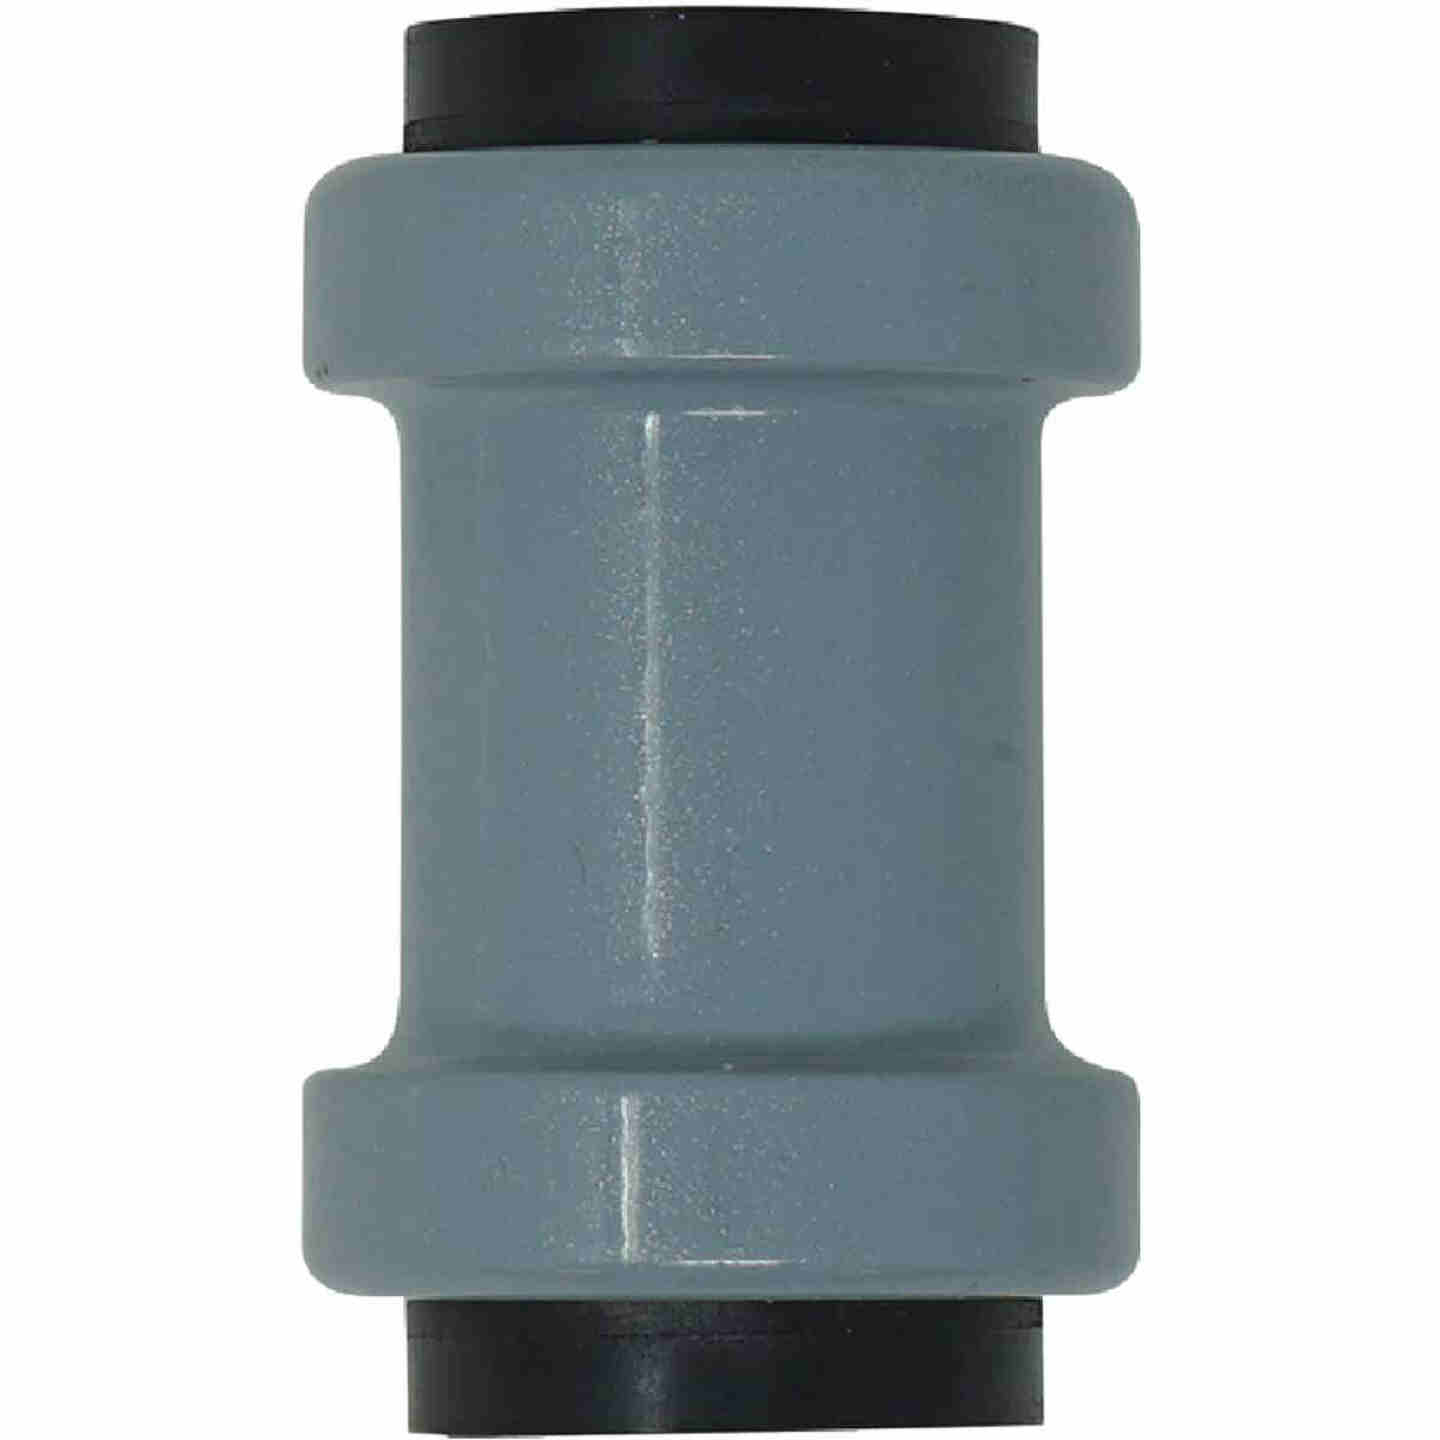 Southwire SimPush 1/2 In. EMT Push-To-Install Conduit Coupling (20-Pack) Image 1